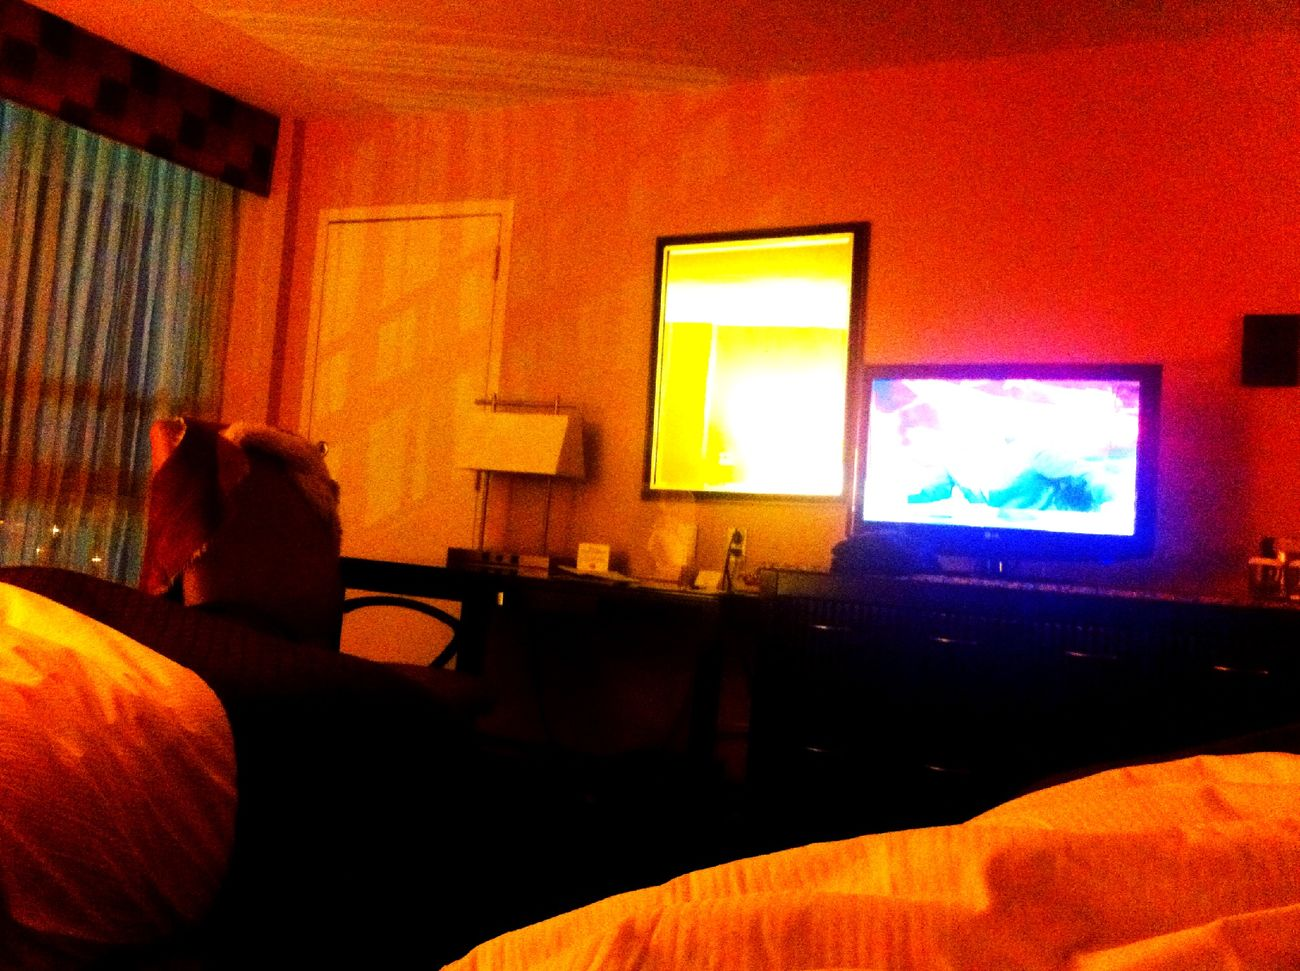 Watching stupid TV with Marguerite in a hotel at JFK. Flight cancellation. at Double Tree by Hilton Hotel Watching Stupid TV With Marguerite In A Hotel At JFK. Flight Cancellation.